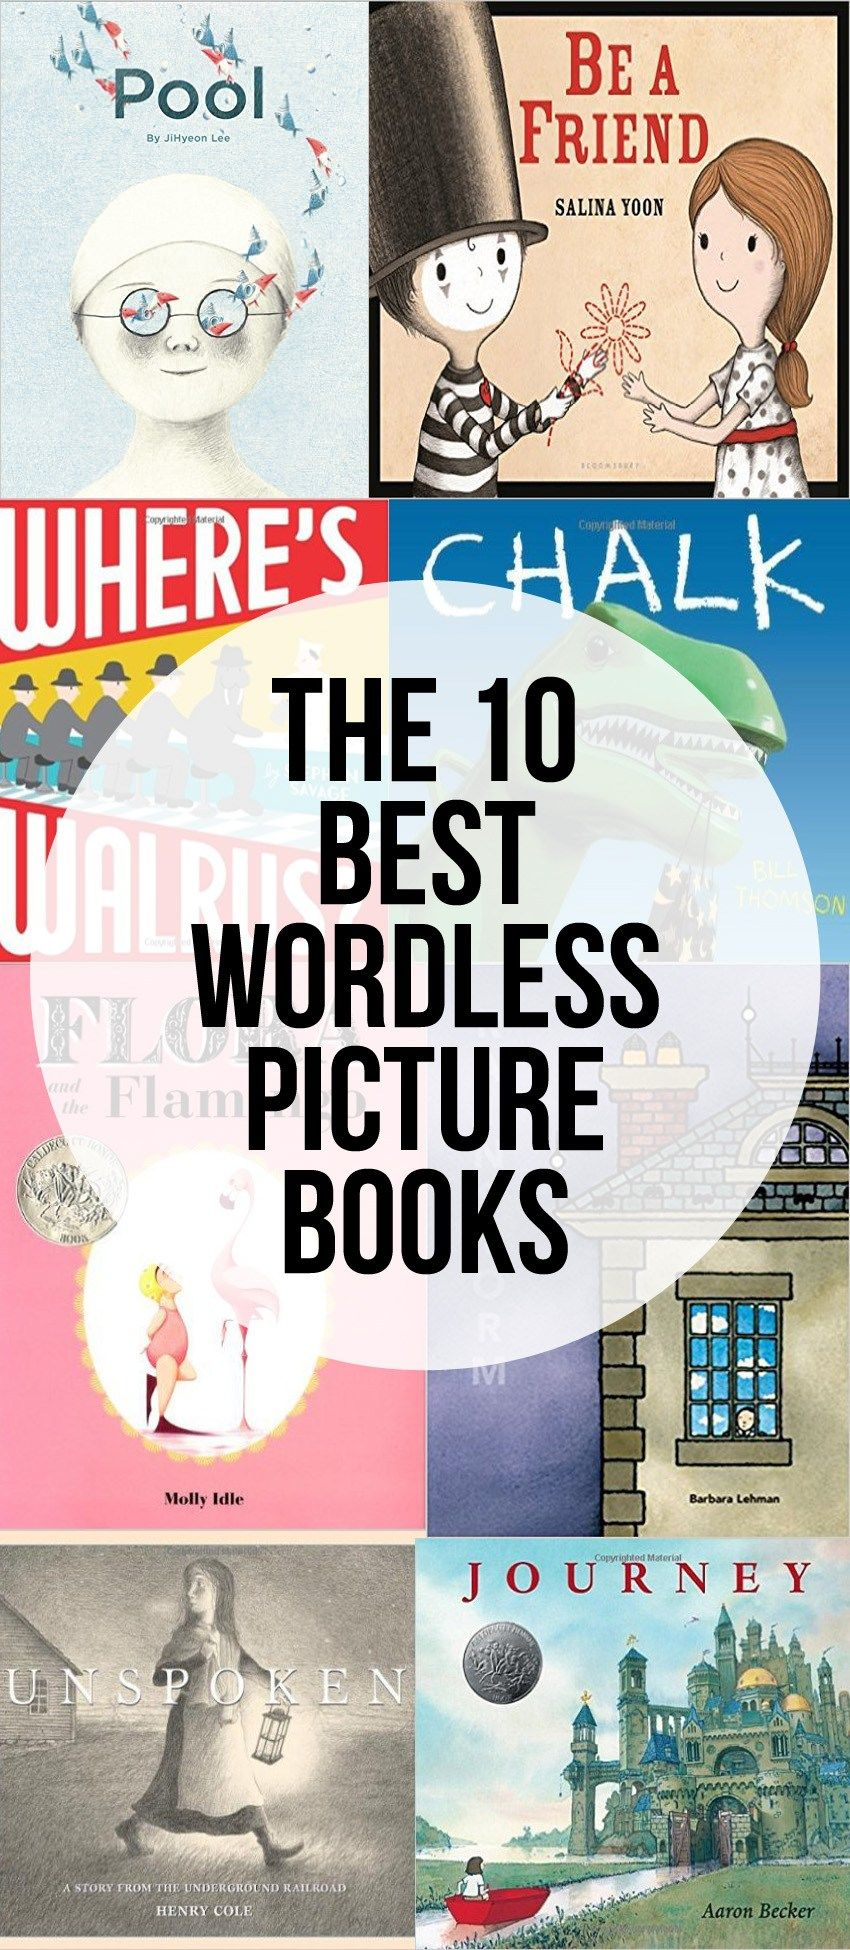 The 10 Best Wordless Picture Books